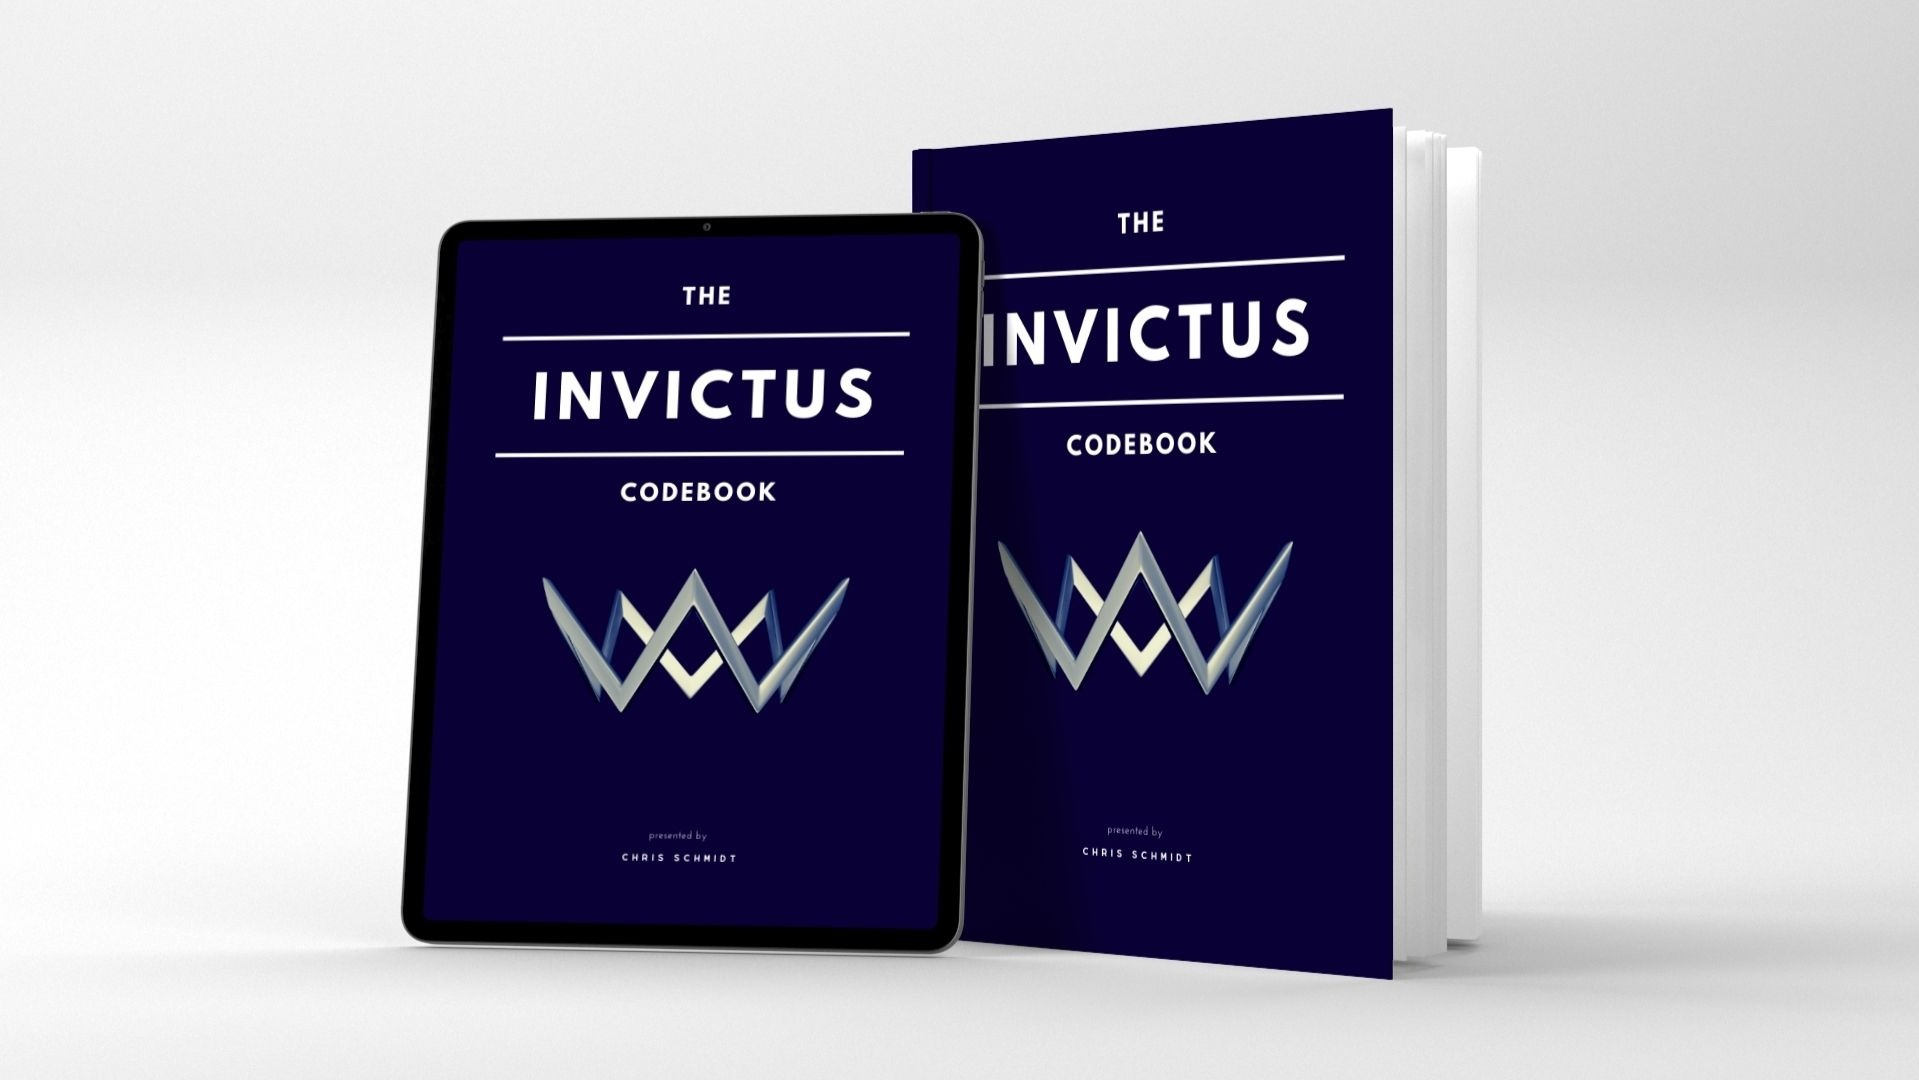 The INVICTUS Codebook